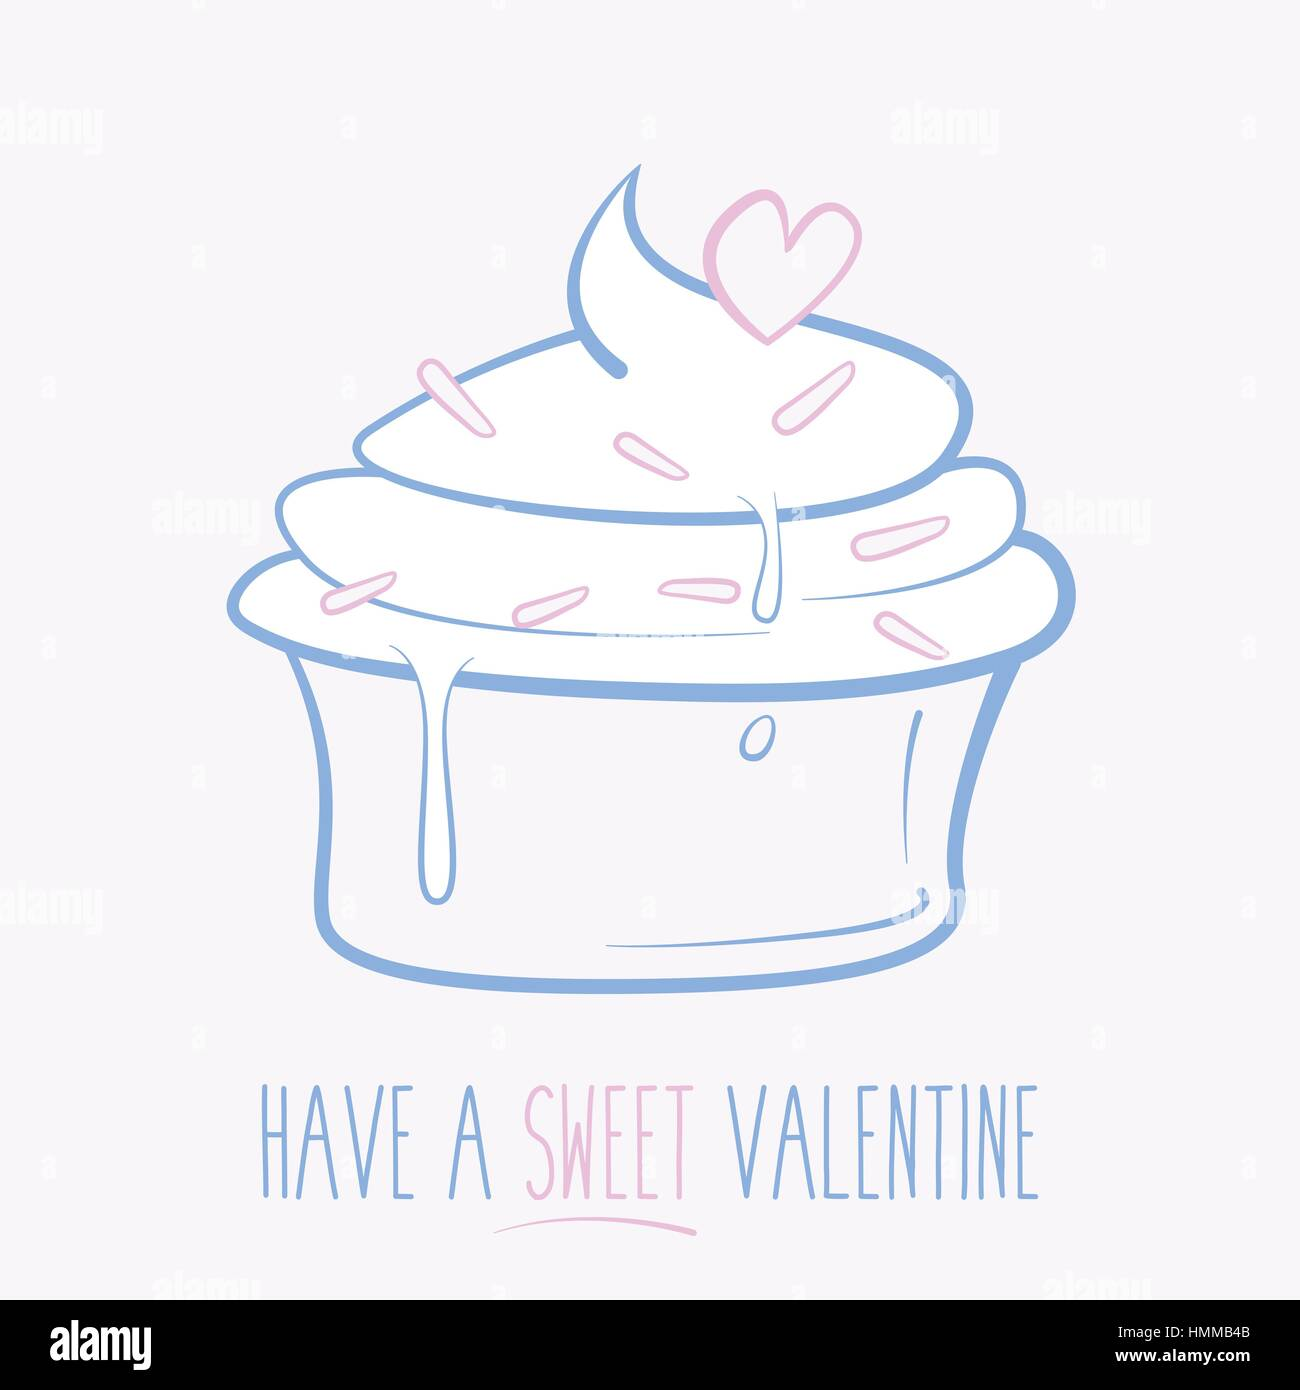 Have a sweat Valentine cupcake. Vector illustration. - Stock Vector